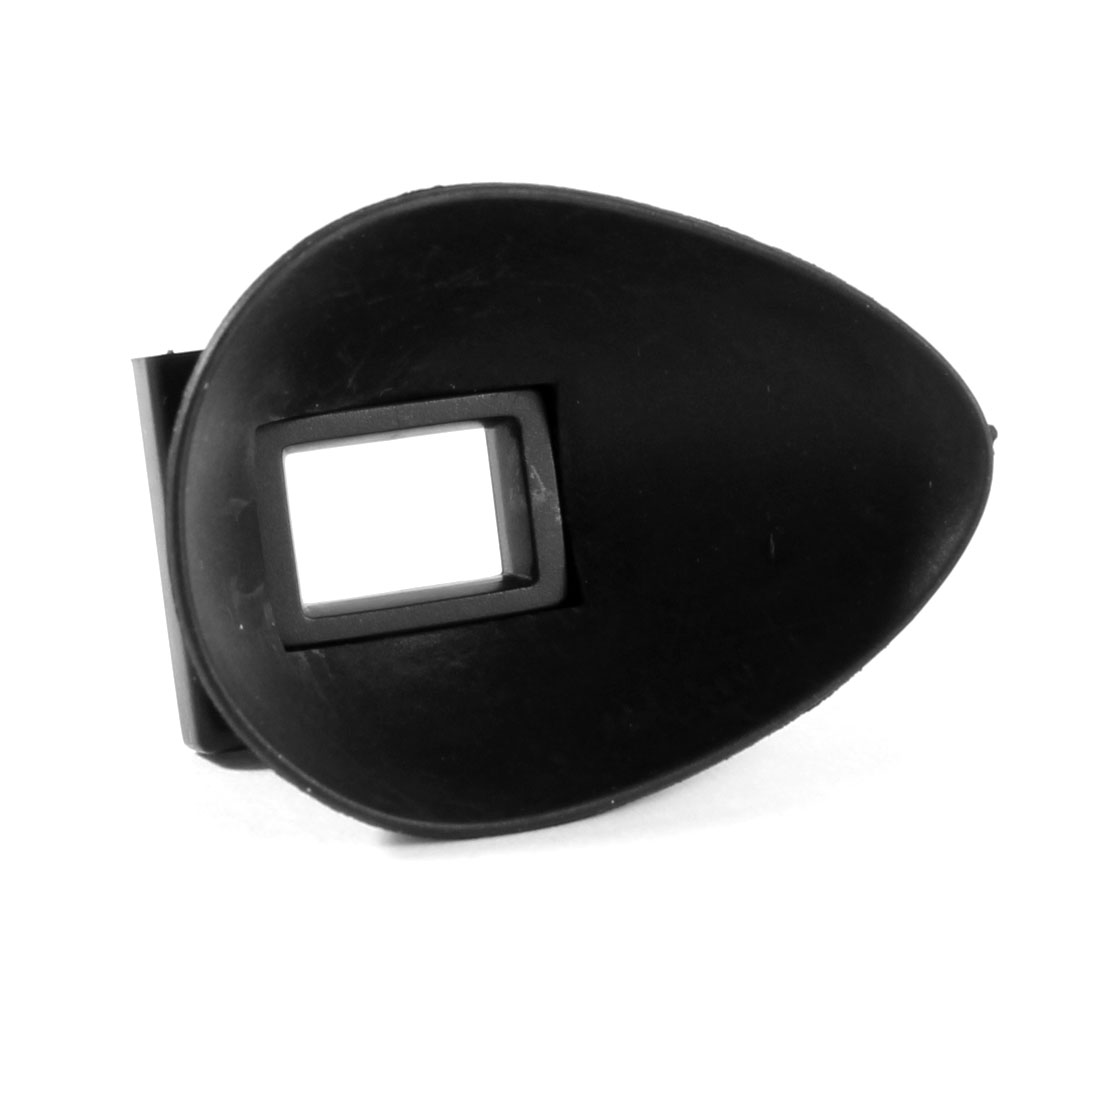 22mm Rubber Eyepiece Eyecup Blinder for Canon EOS 30 55 50D 50E 33 3 5 Camera